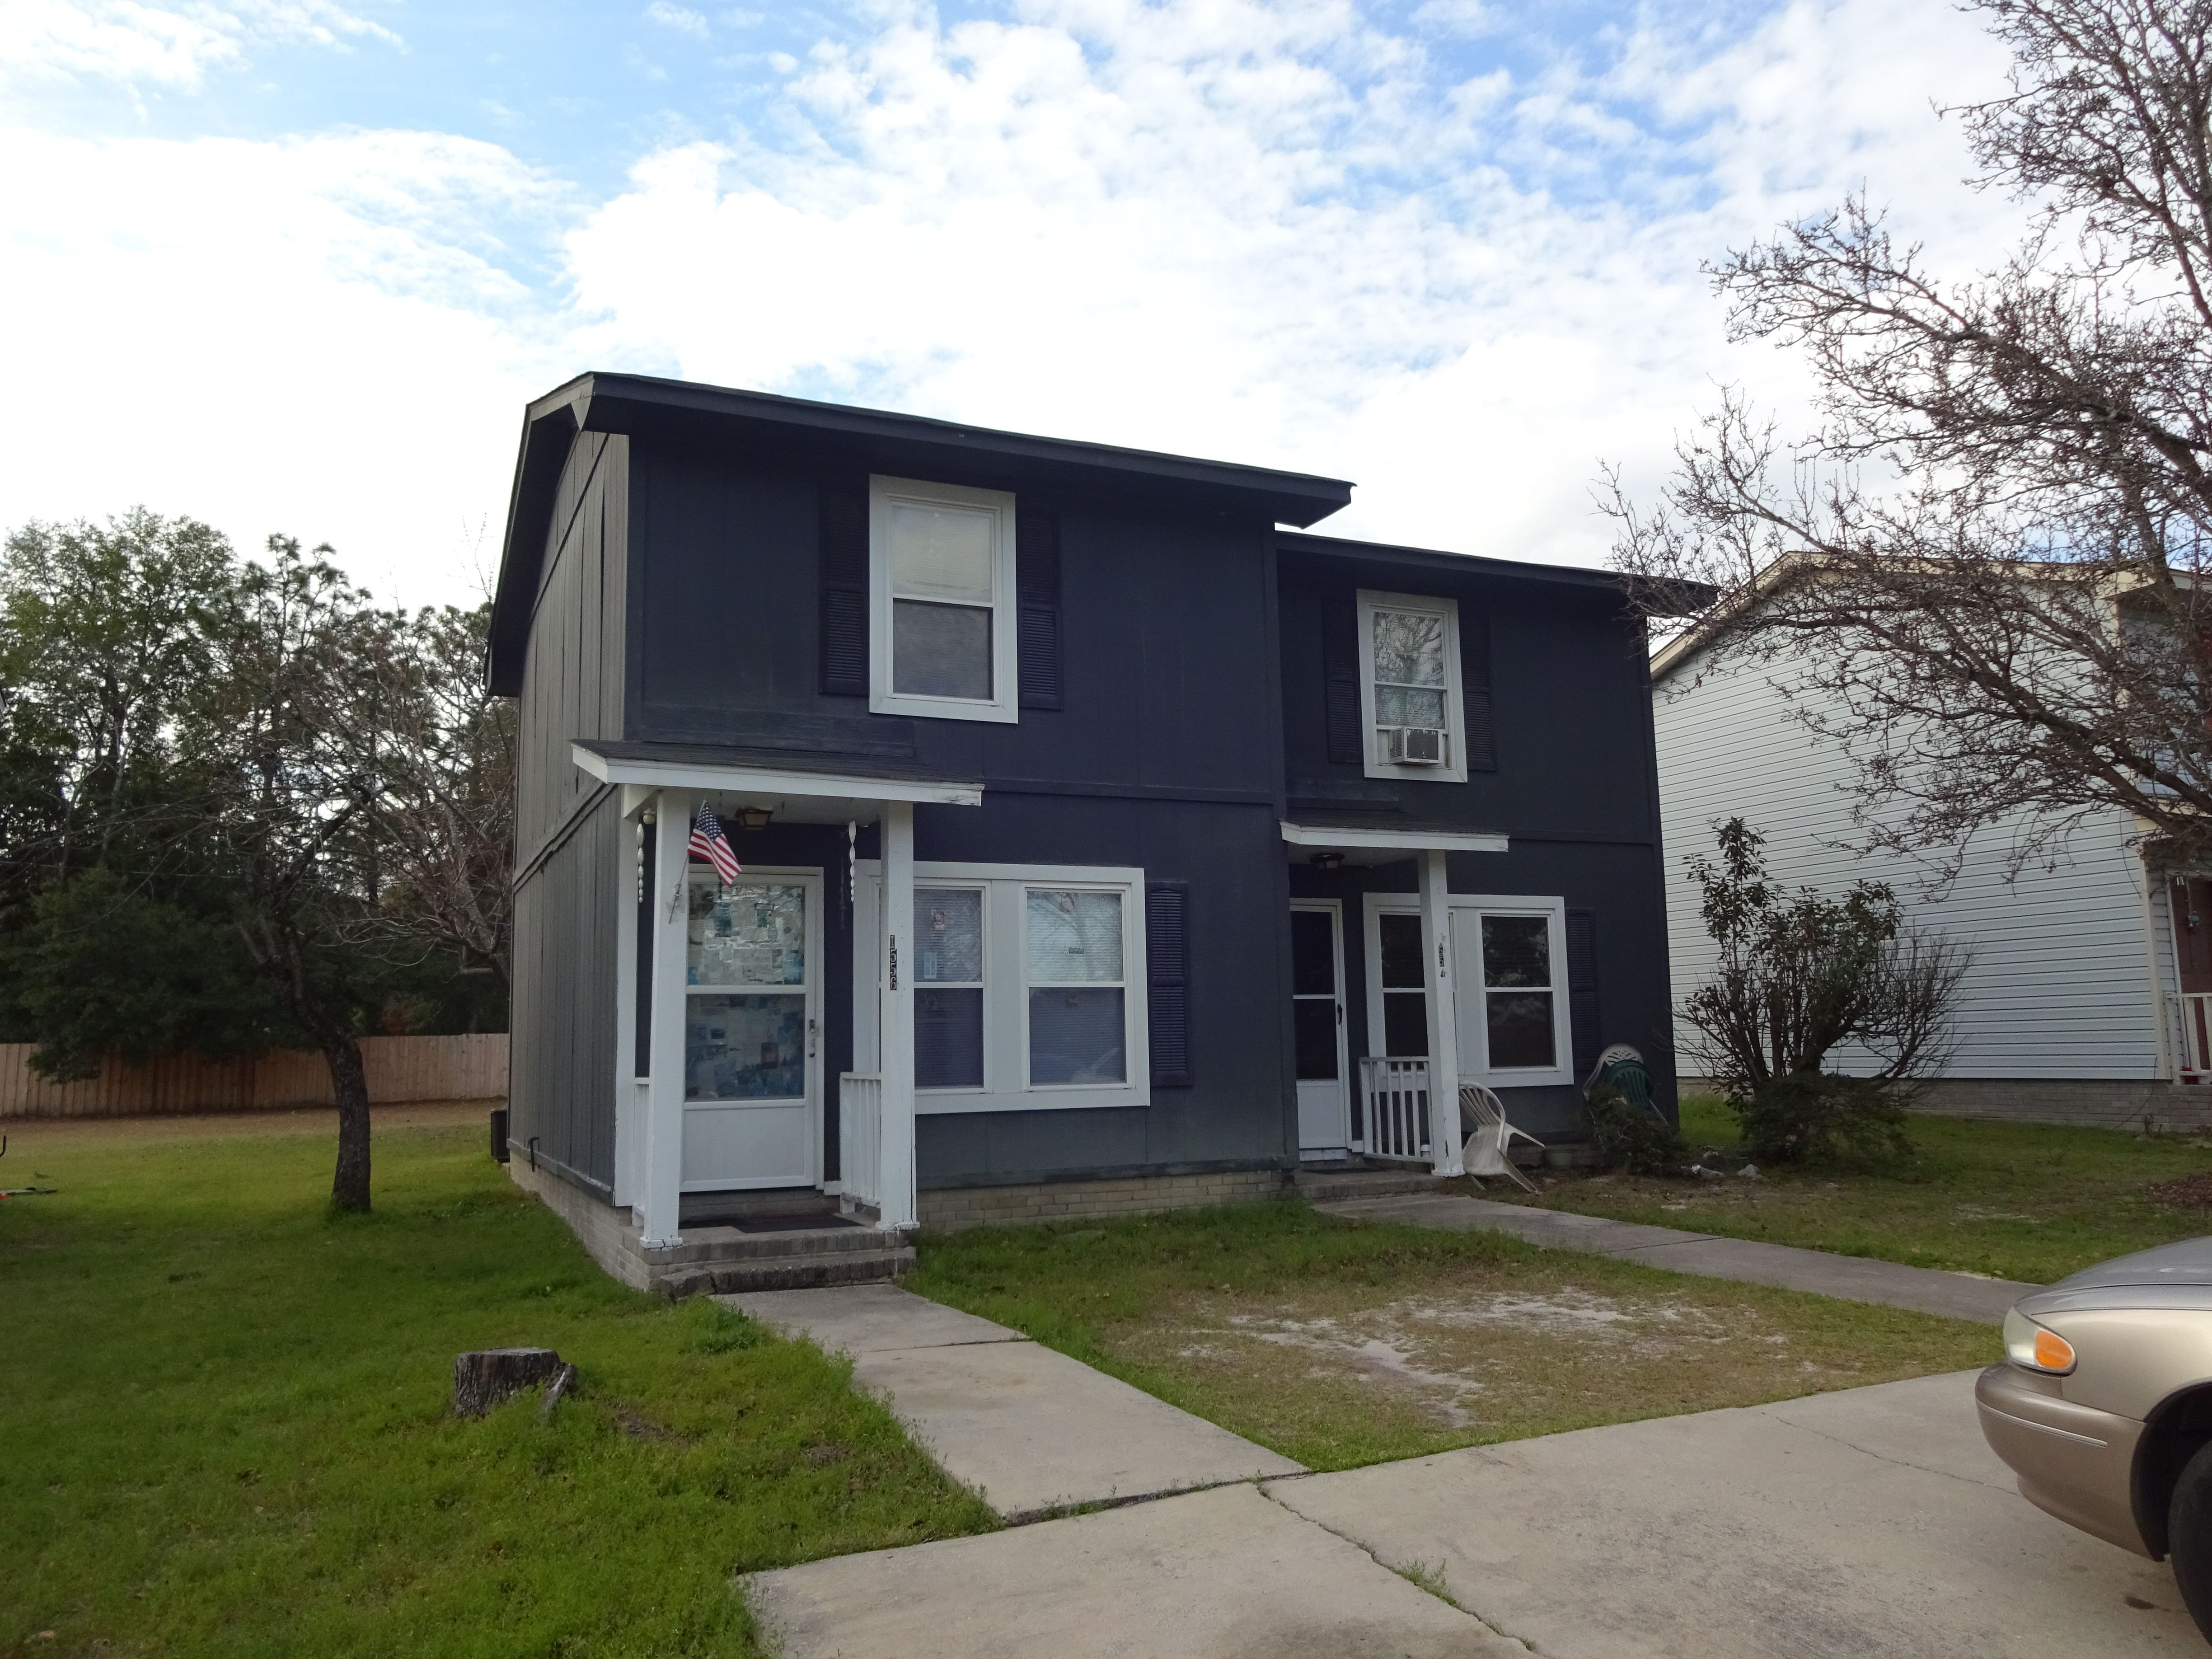 Great duplex with 2 bedrooms and 1.5 bathrooms on each